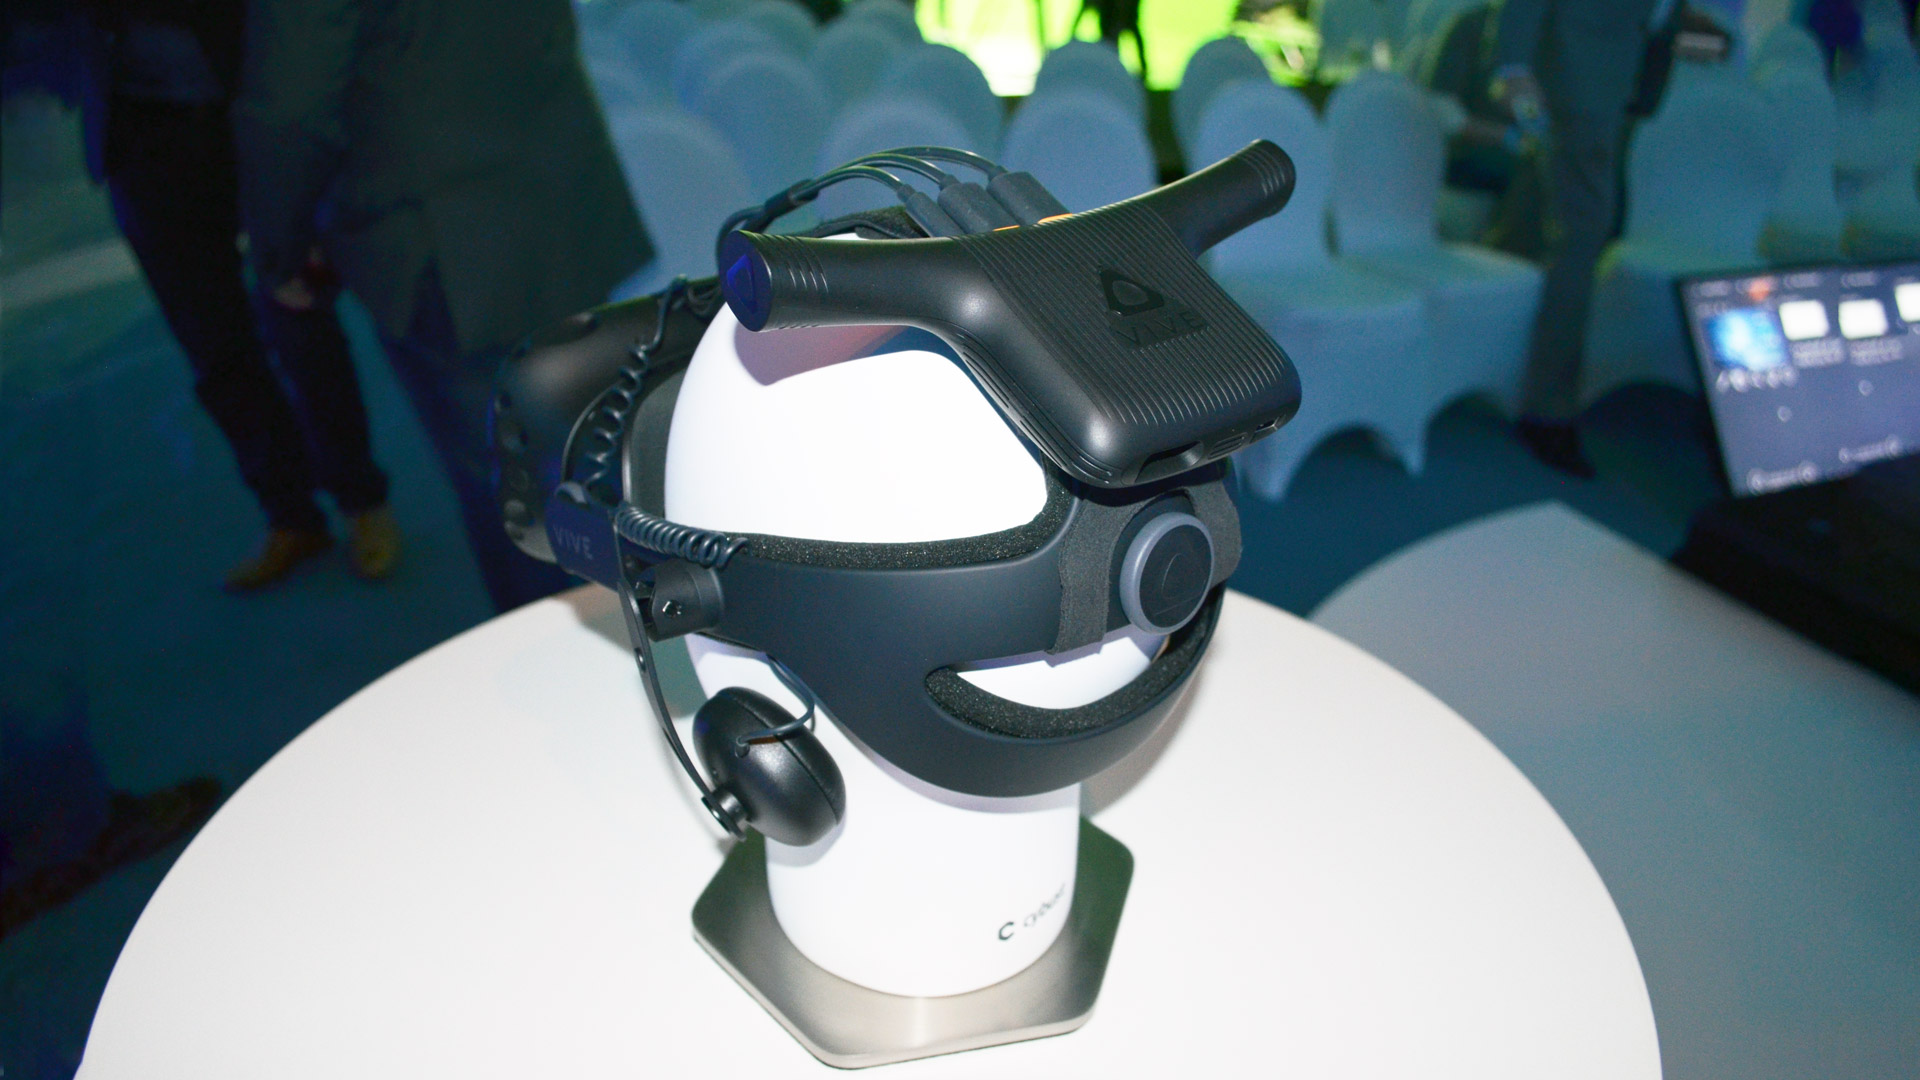 CES 2018: HTC's Vive Wireless Adaptor to Support Both Vive